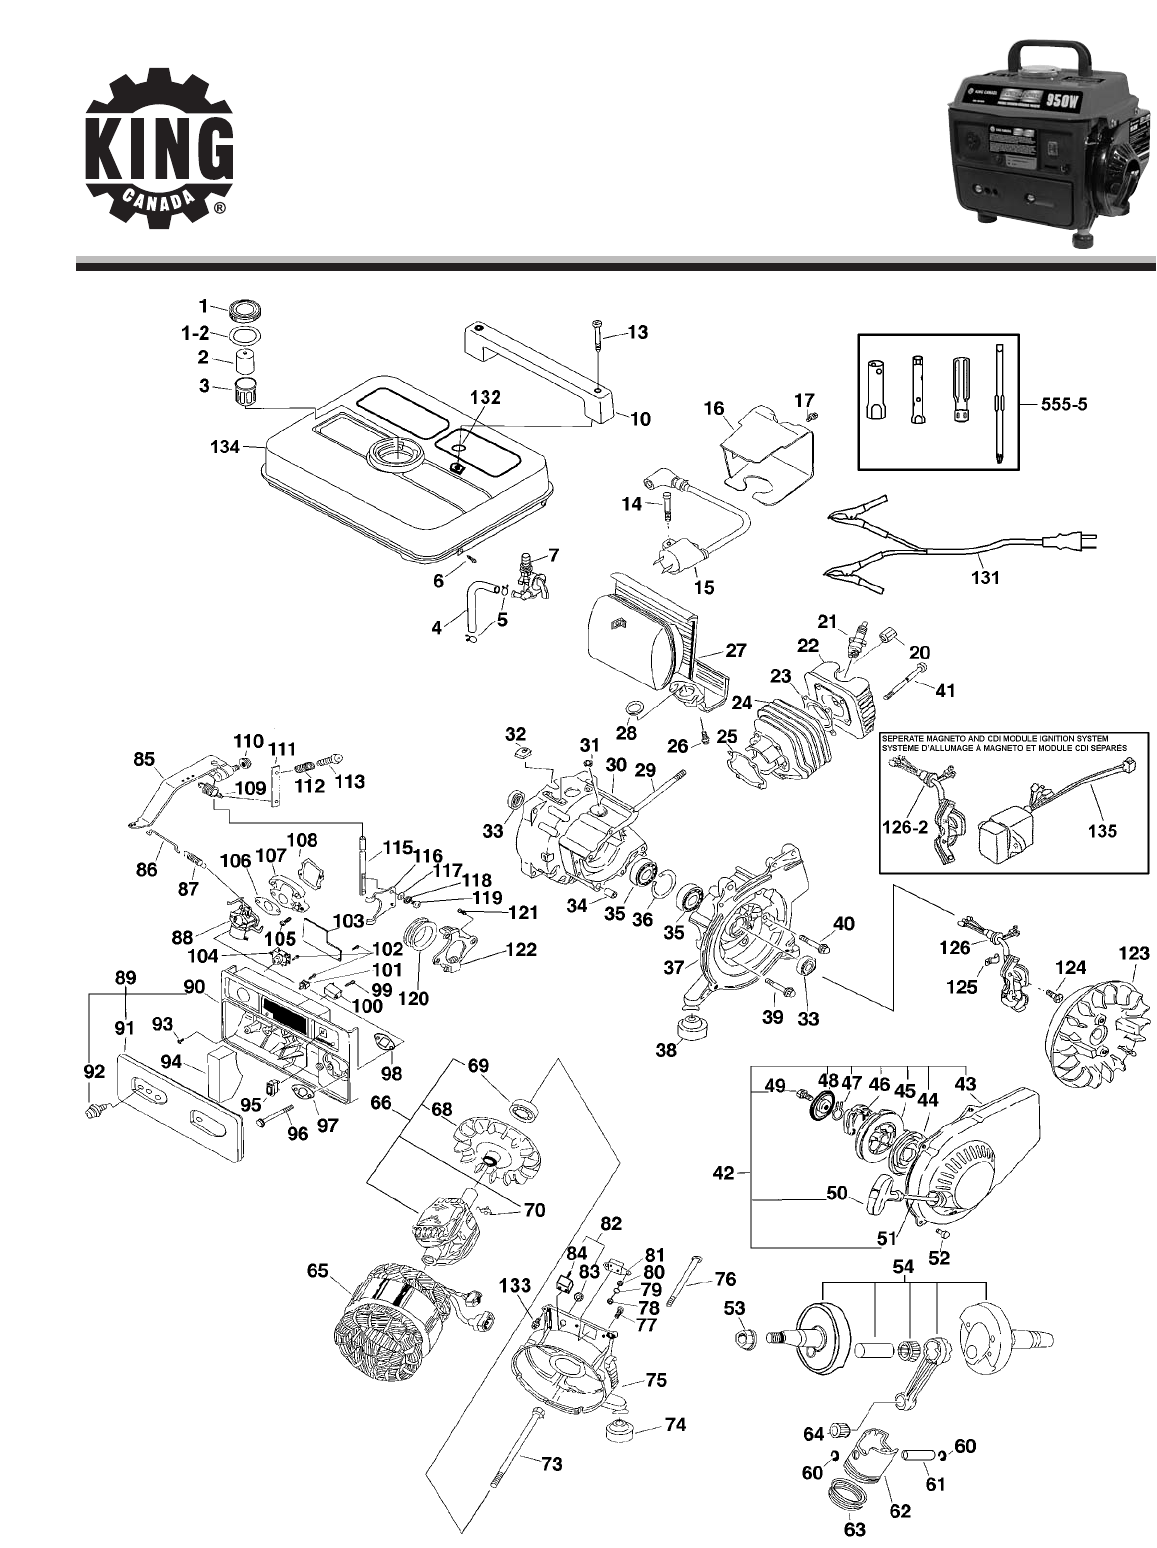 Predator 8750 Generator Wiring Diagram on Predator Generator Electrical Schematic